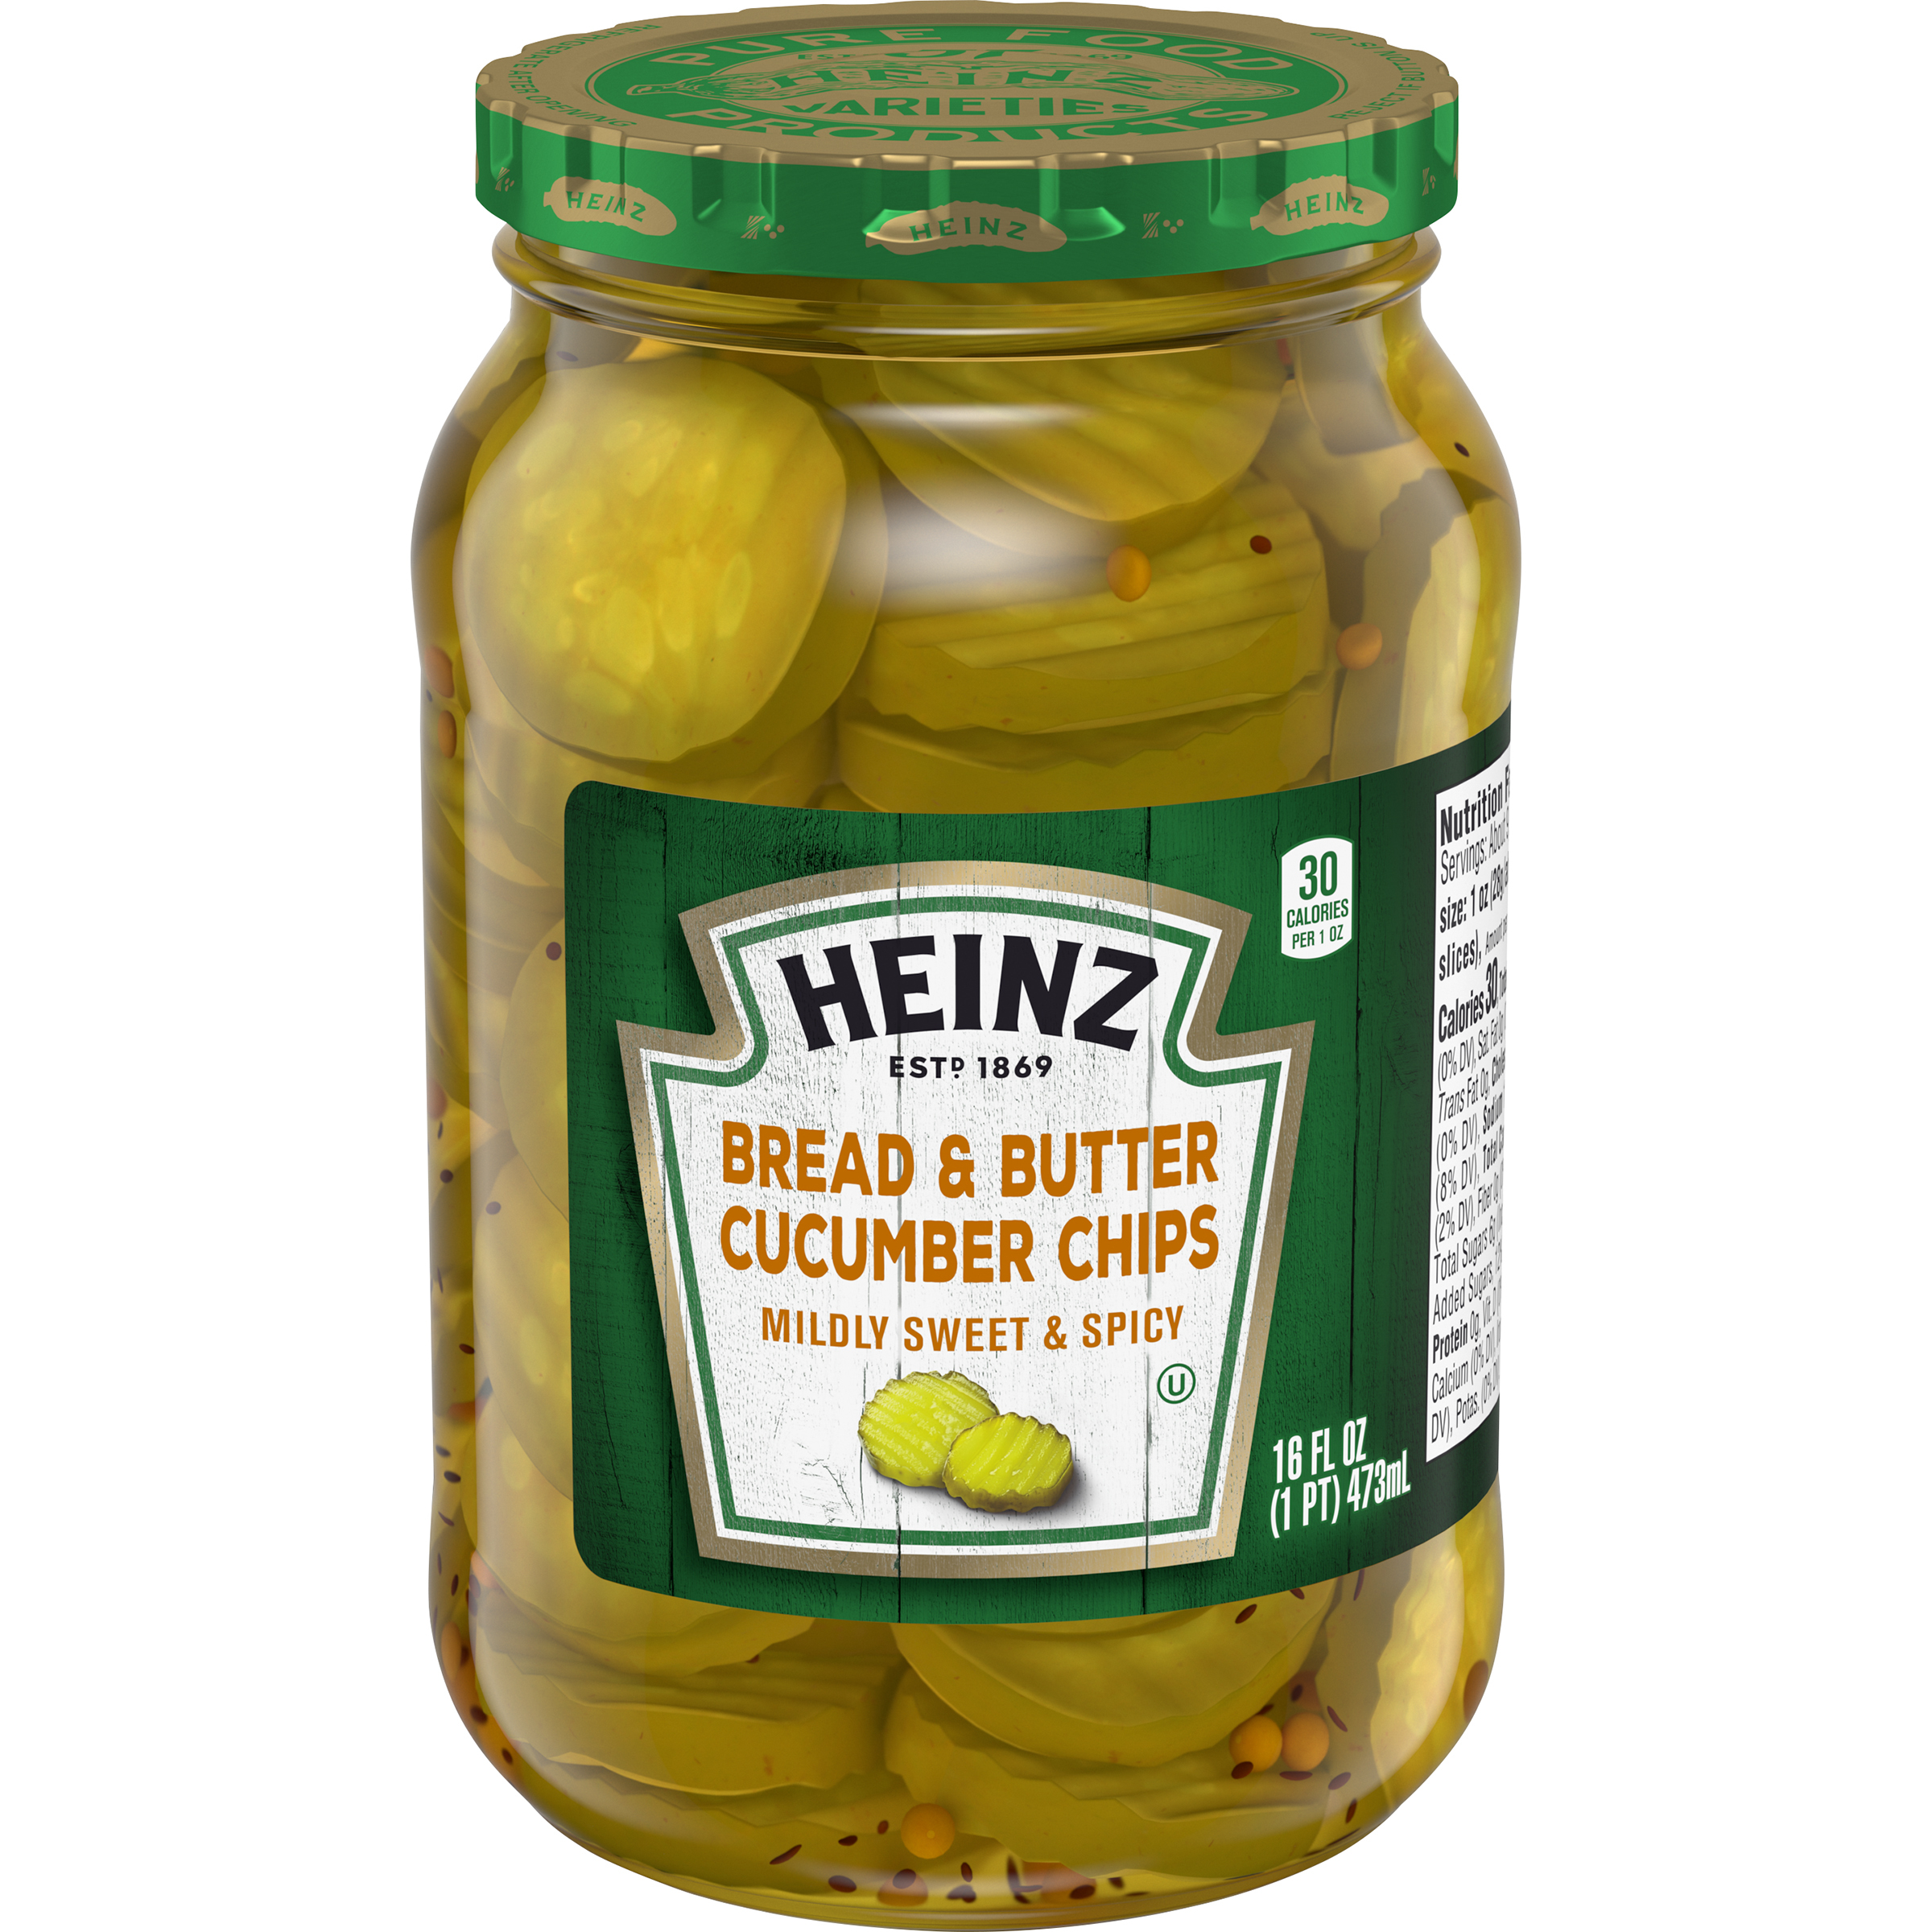 Heinz Bread & Butter Chips 16 fl oz Jar image